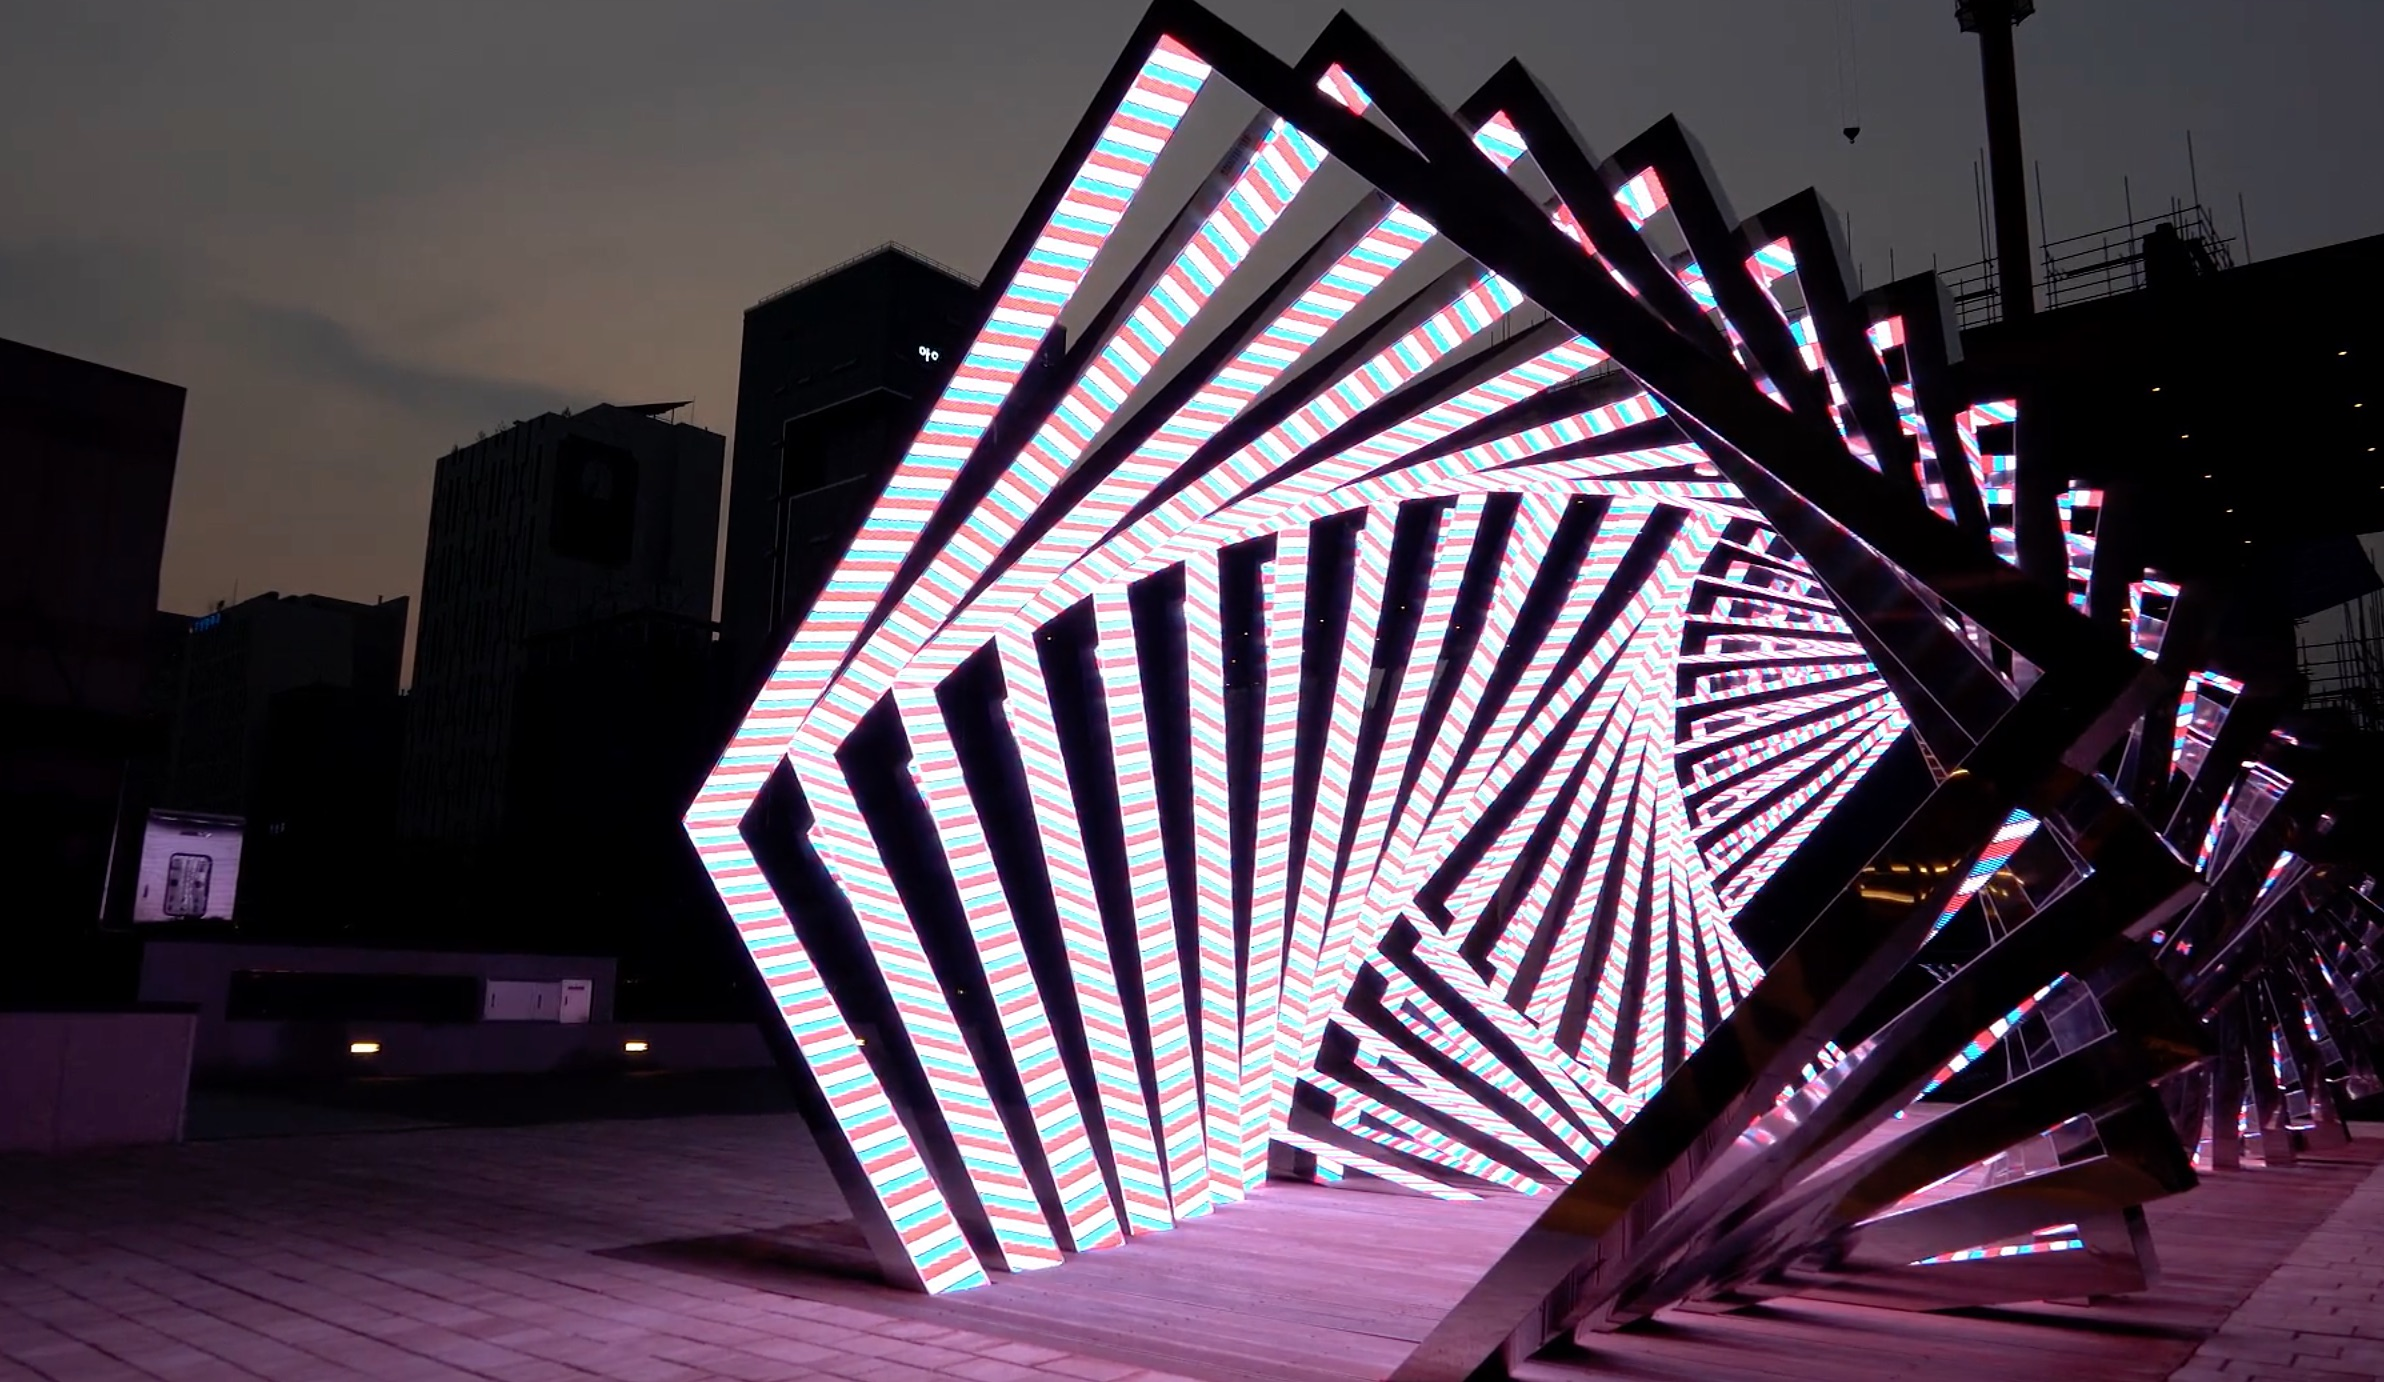 LED tunnel with square shape